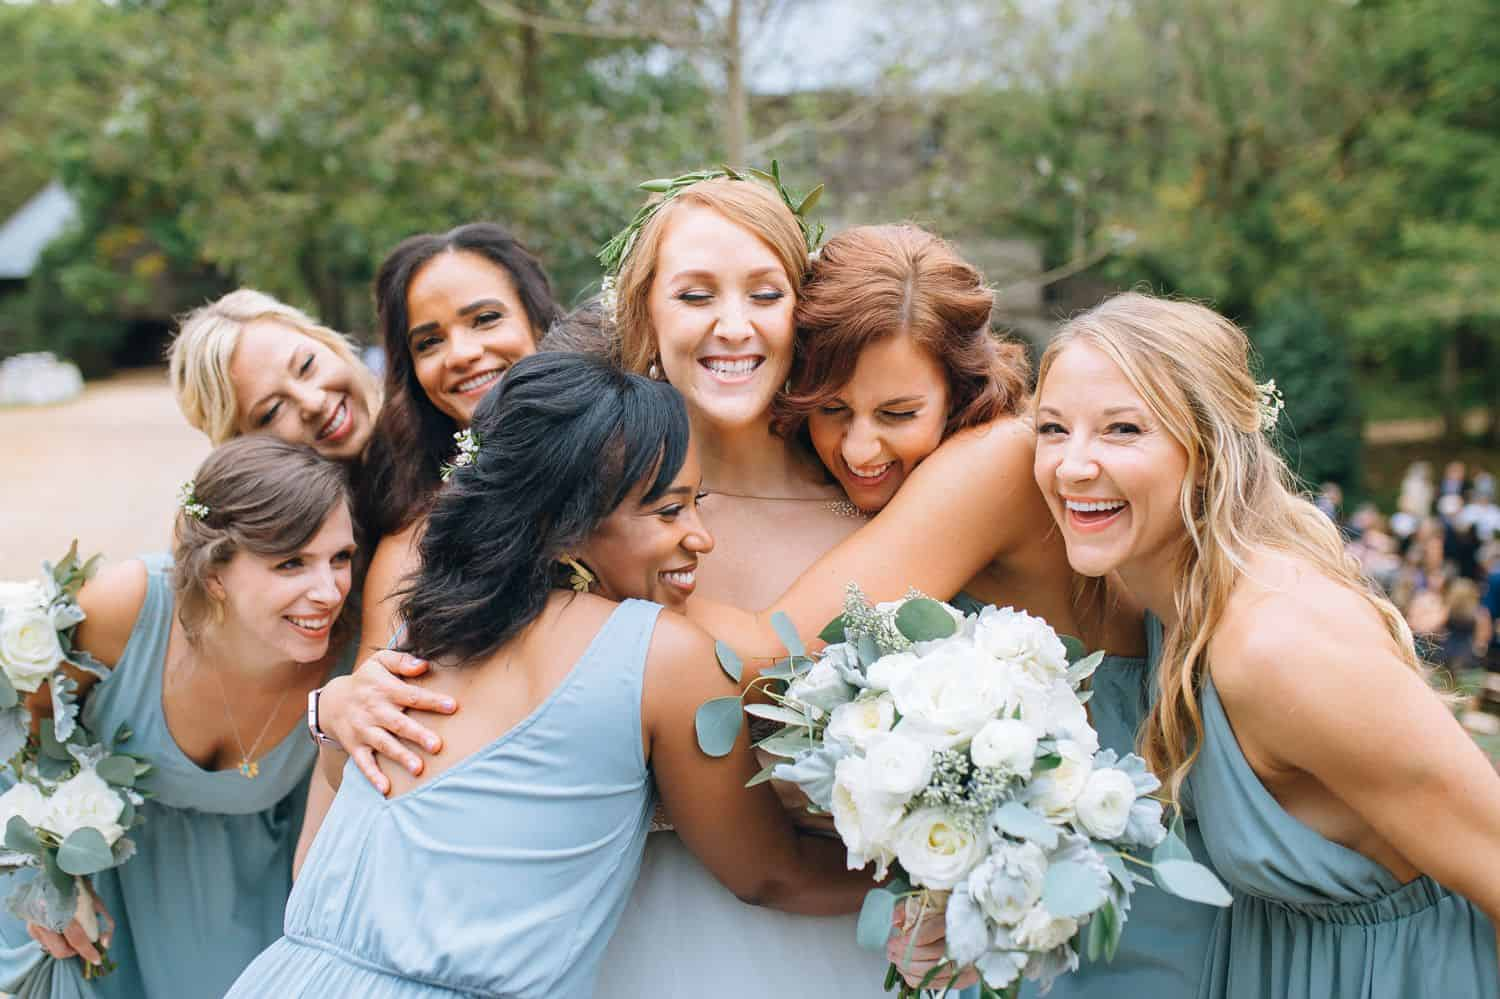 Bridesmaids in pale blue dresses gather around the bride for hugs on the wedding day